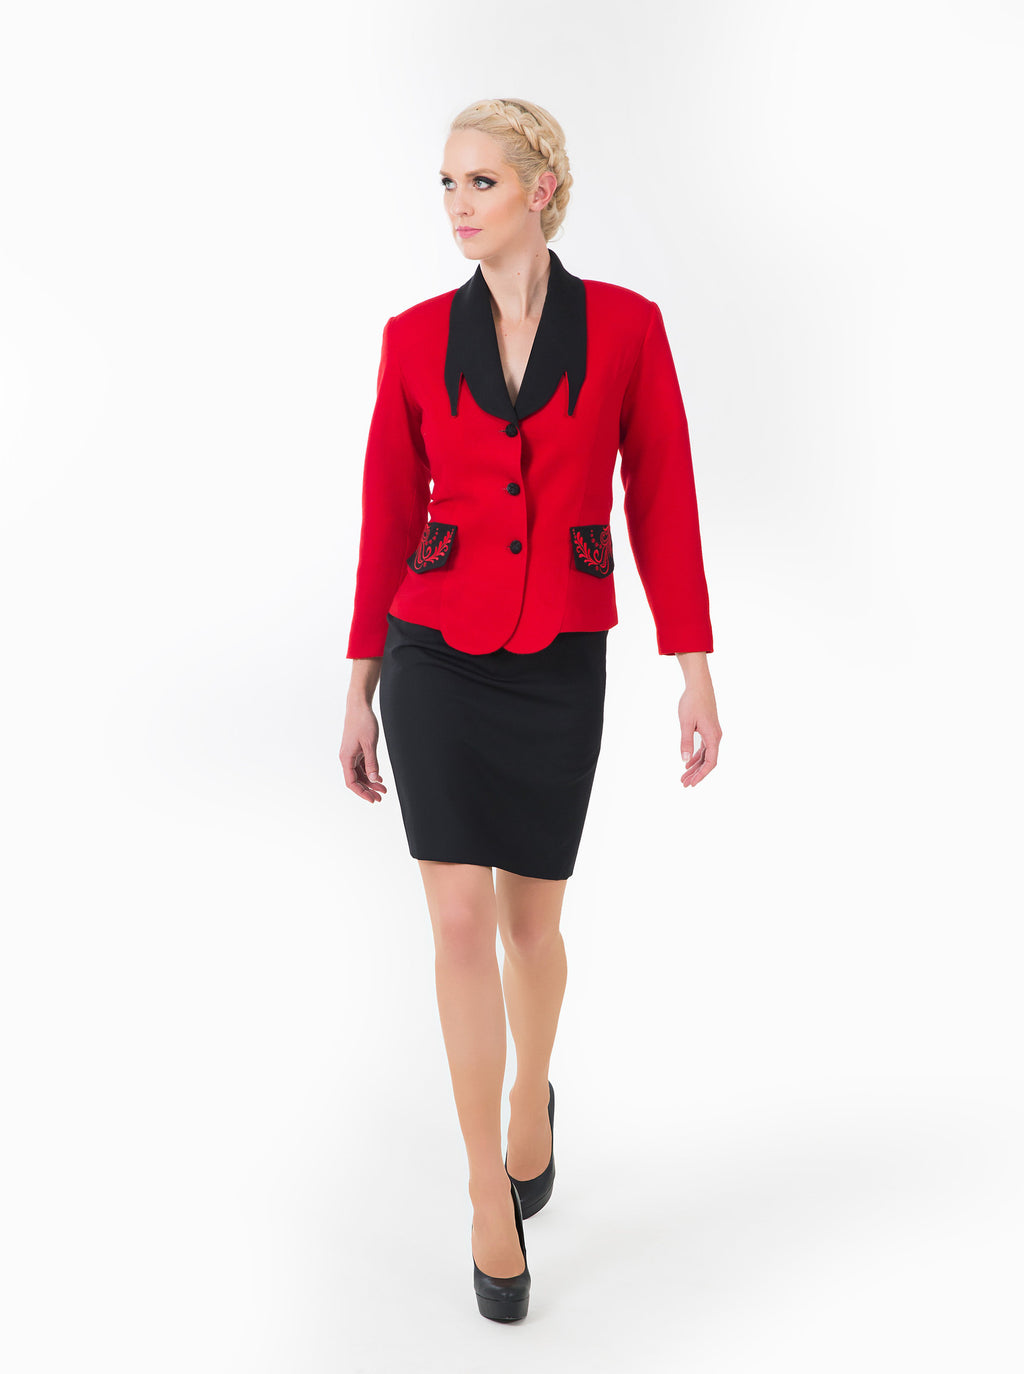 Women's red business suit. Glamorous look for business or everyday.  Front of dress shows unique black color and embroidery.